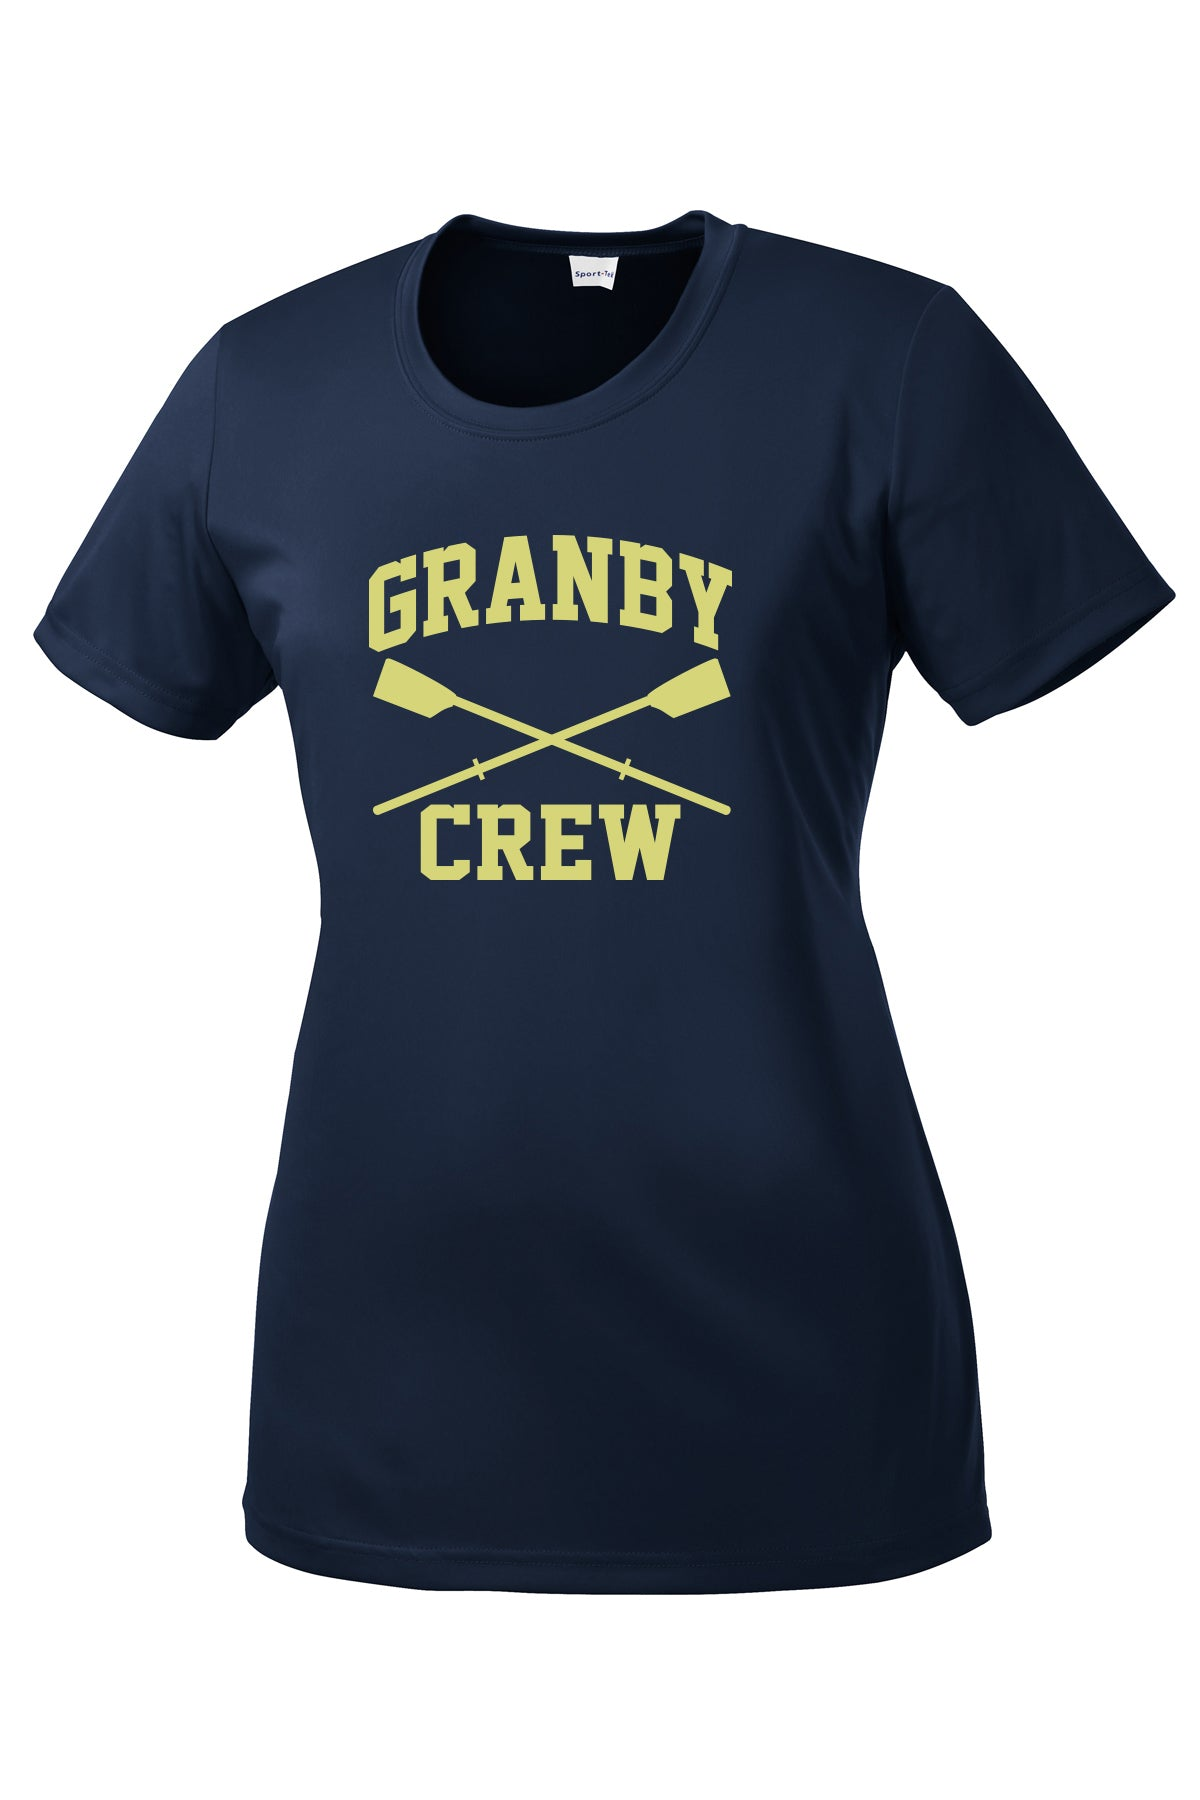 Granby Crew Women's Drytex Performance T-Shirt